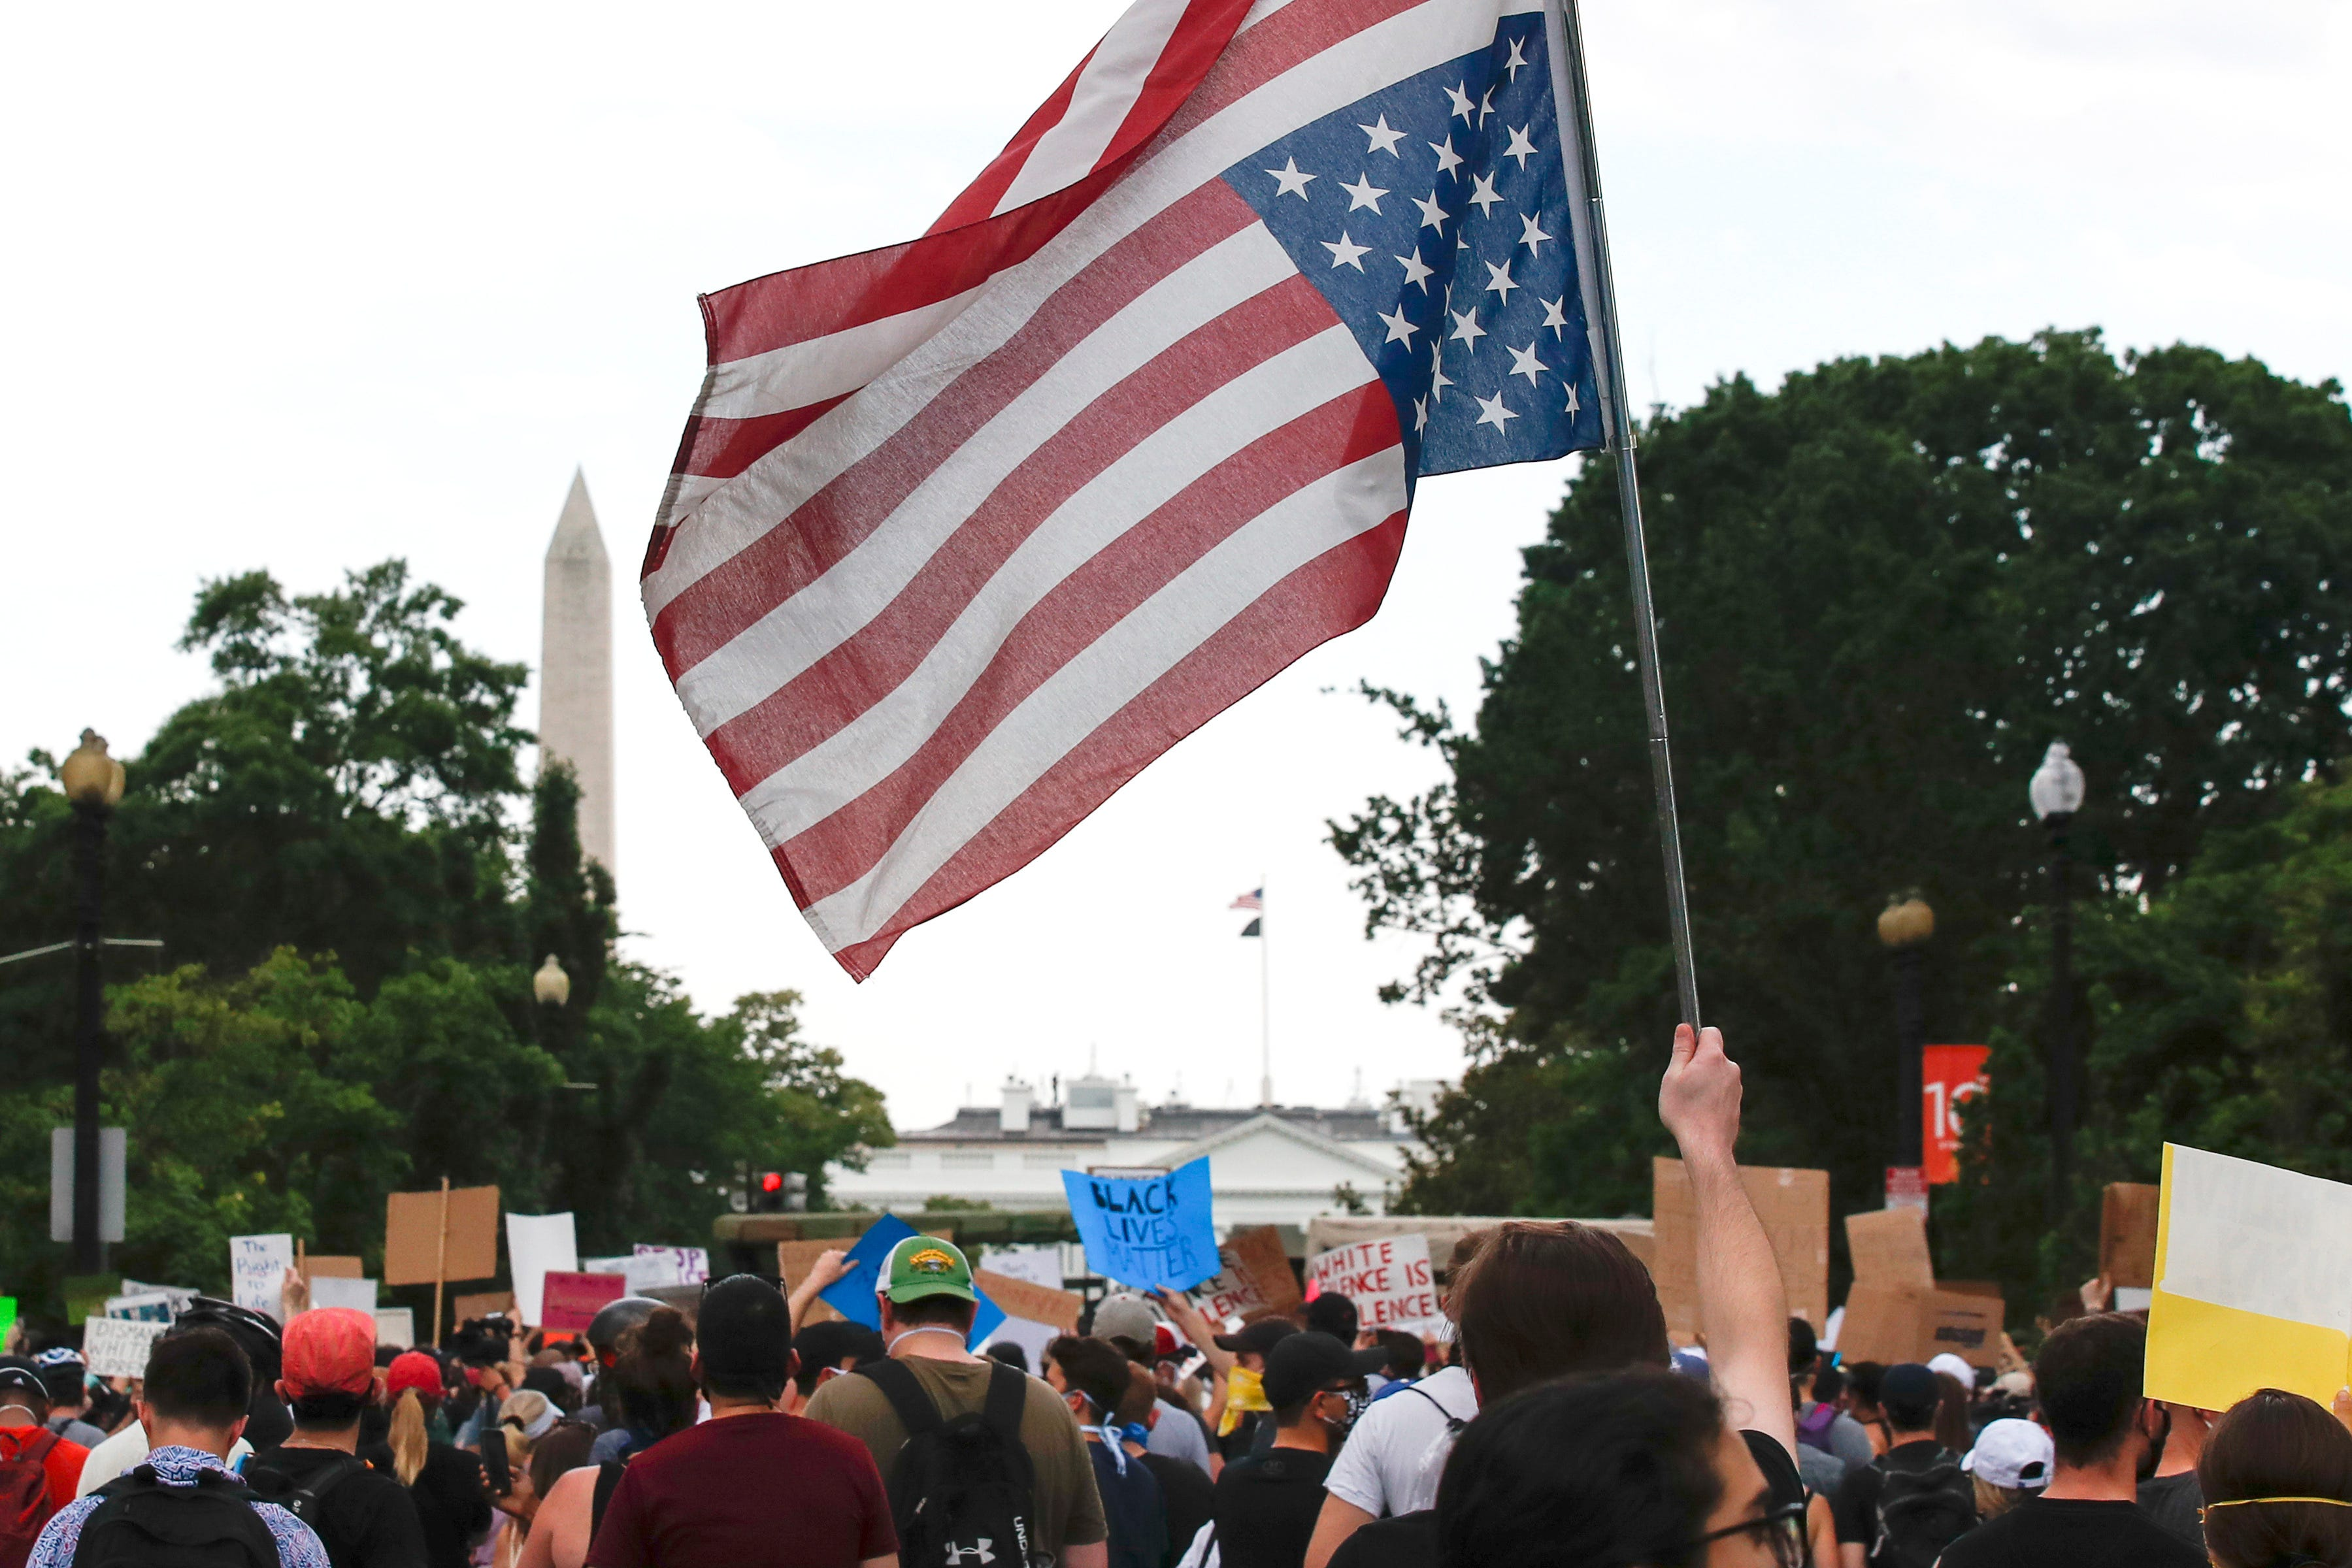 I can t breathe : Protesters lie down on DC street, repeat Floyd s words